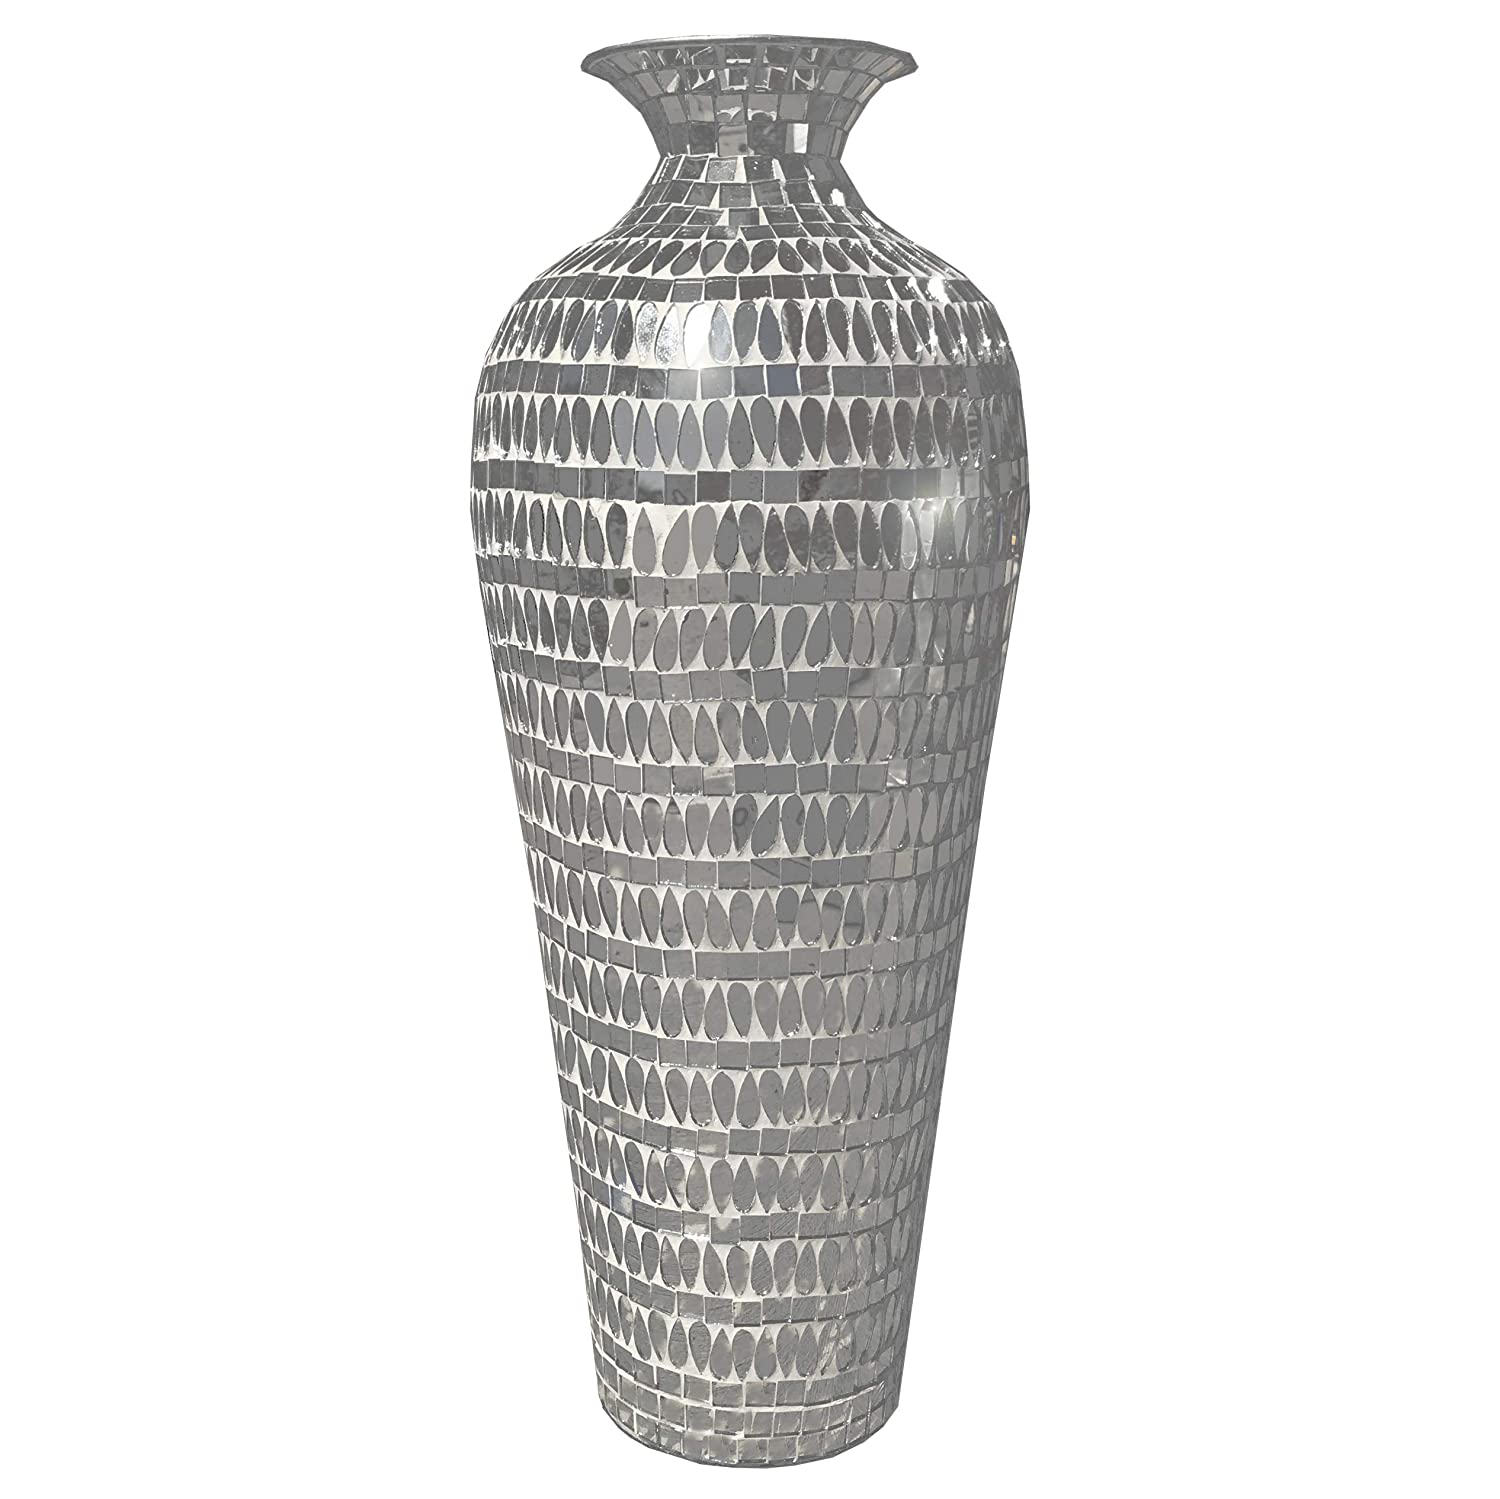 DecorShore Bella Palacio Collection Decorative Mosaic Vase - Tall 20 in. x 6 in. Home Decor Geometric Pattern Metal Floor Vase with Mirrored Glass Mosaic in Silver